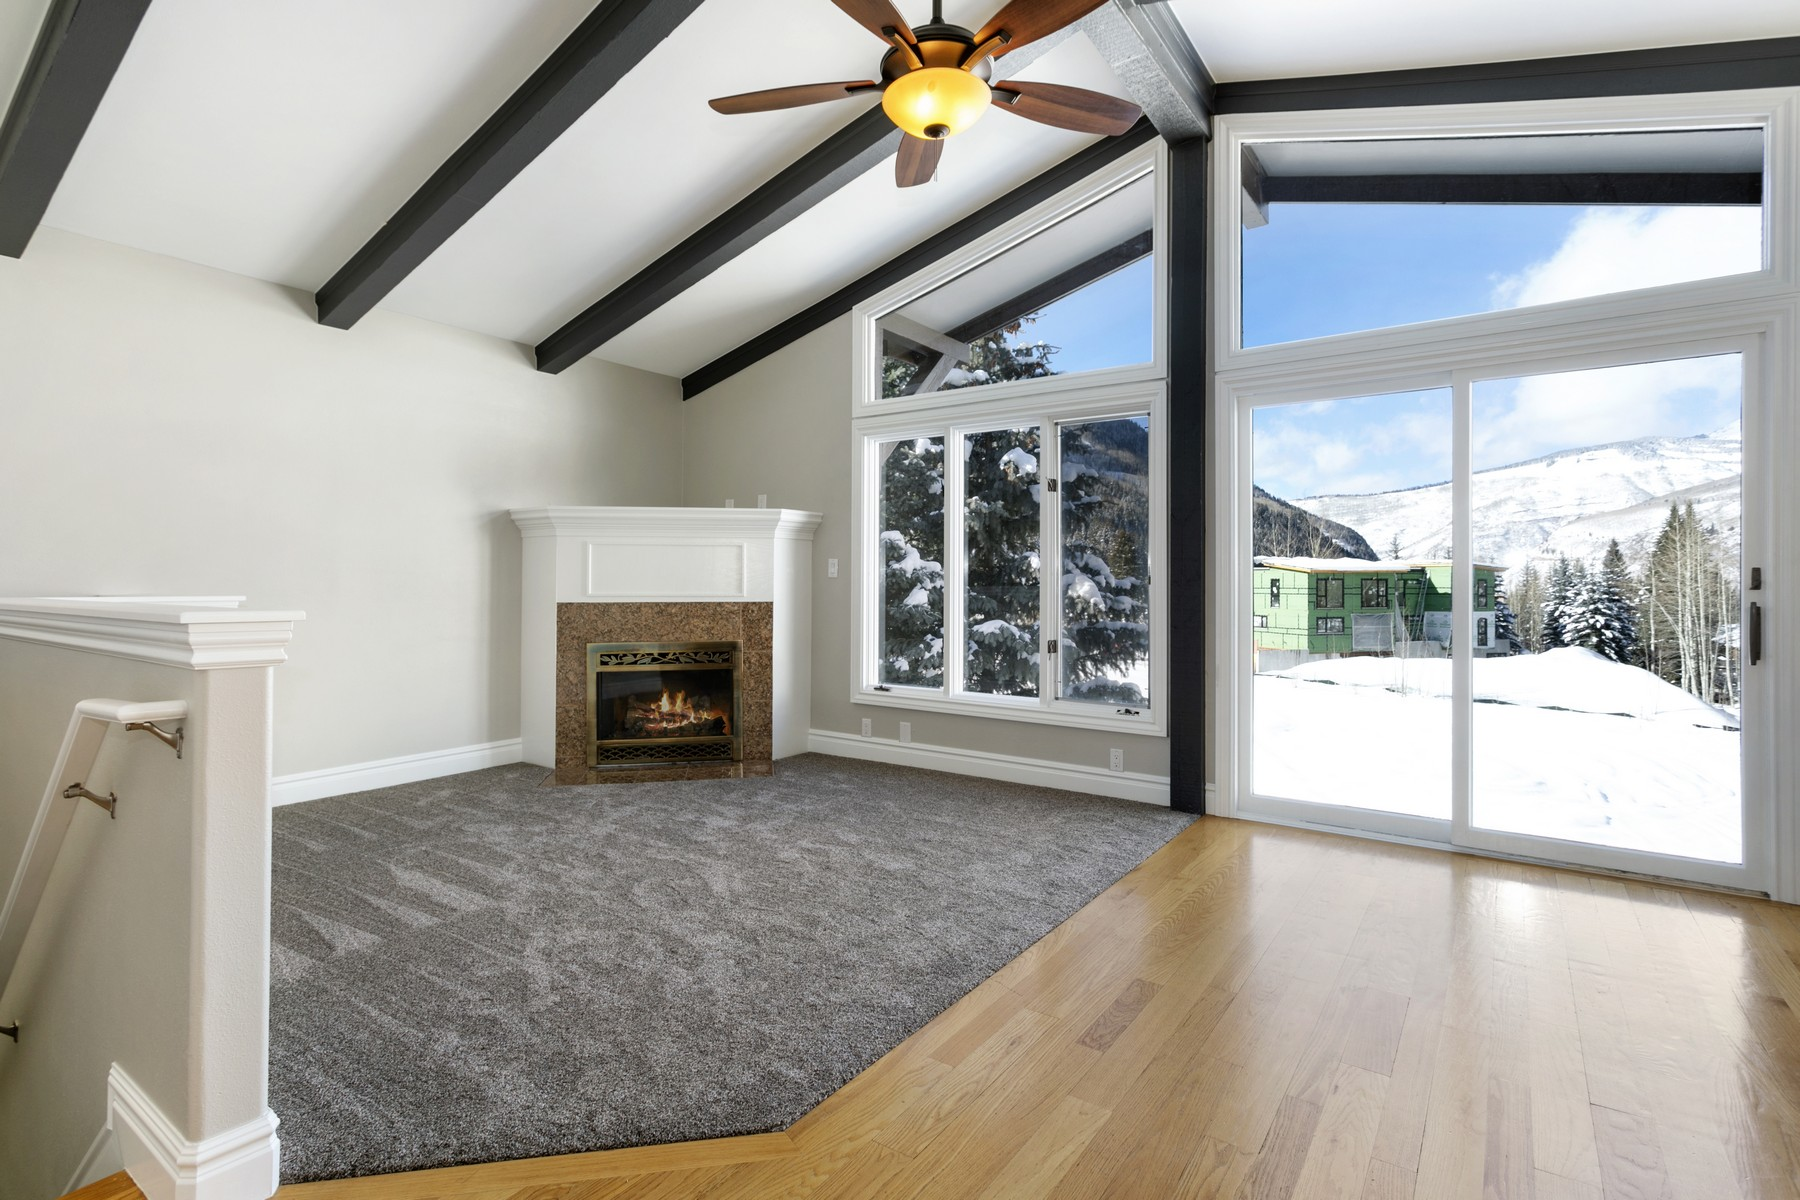 Property for Active at Remodeled Duplex in East Vail at an exceptional value 5064 Black Gore Drive #B & #A Vail, Colorado 81657 United States